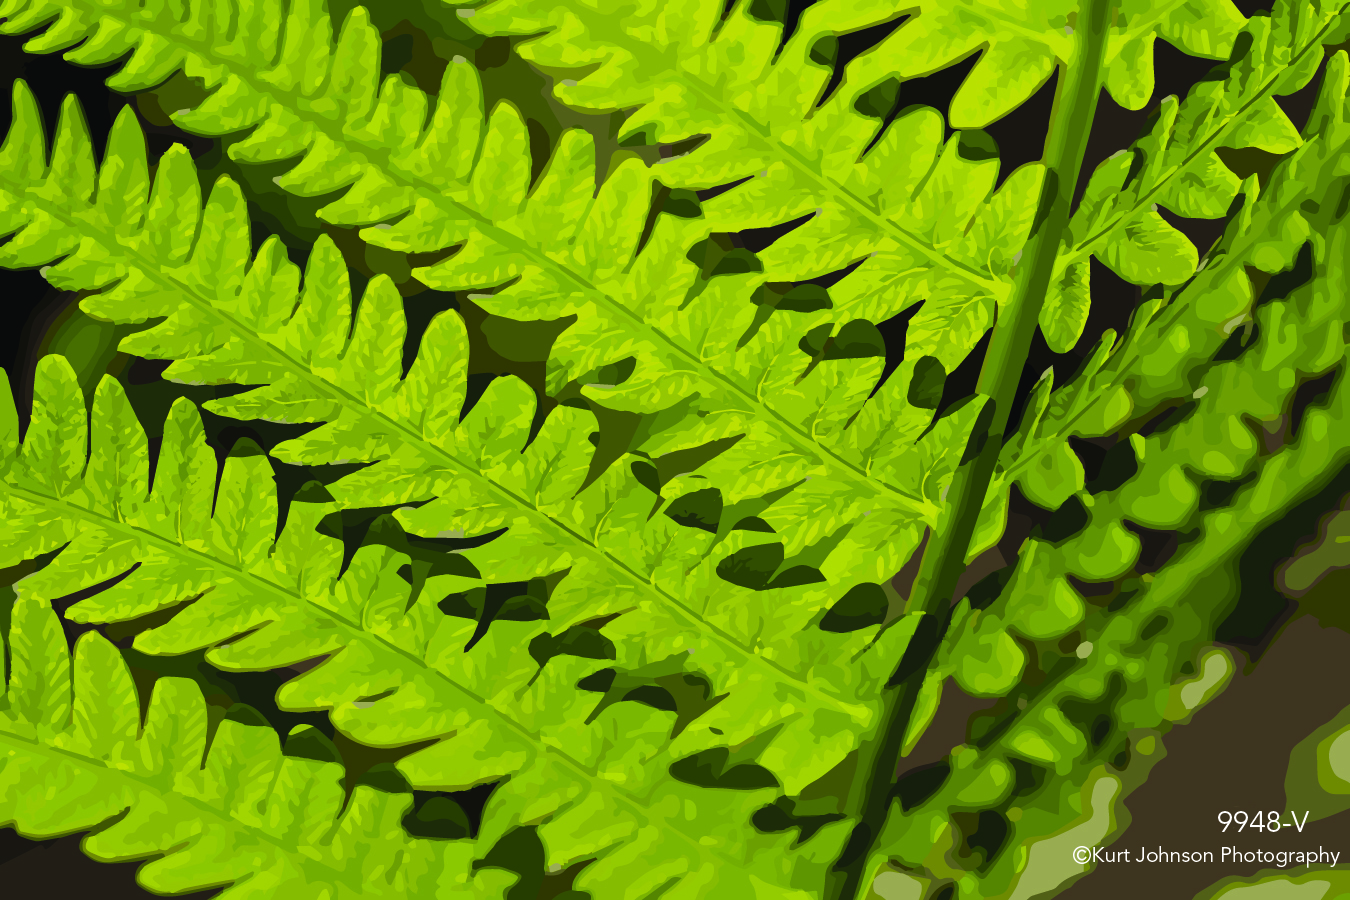 green fern leaves grasses texture detail close up vector lines